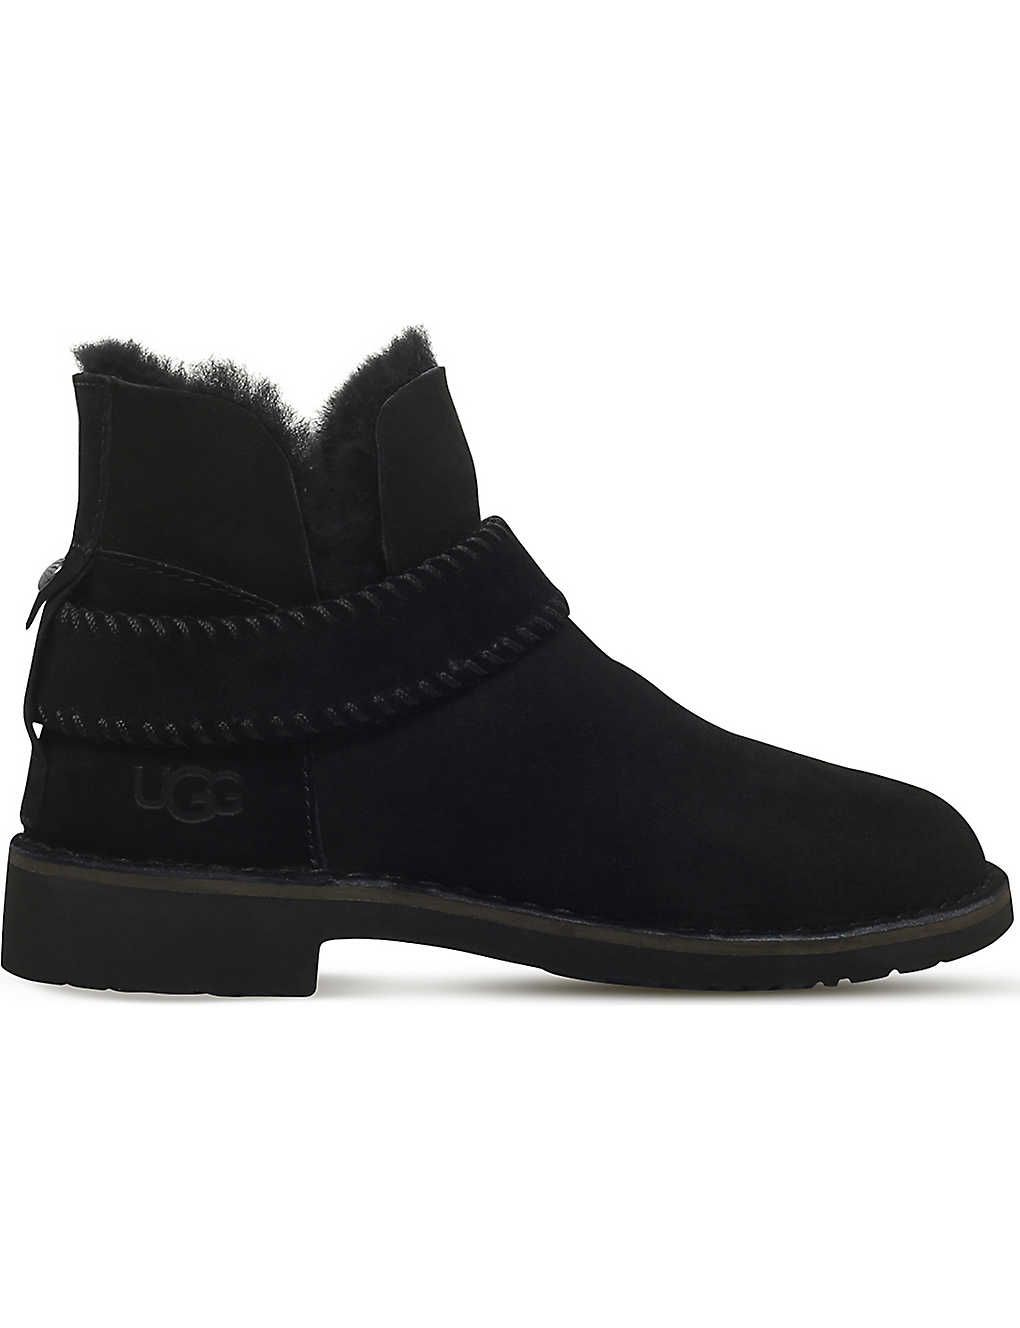 965c7cd14ae UGG - Mckay sheepskin-lined suede ankle boots | Selfridges.com